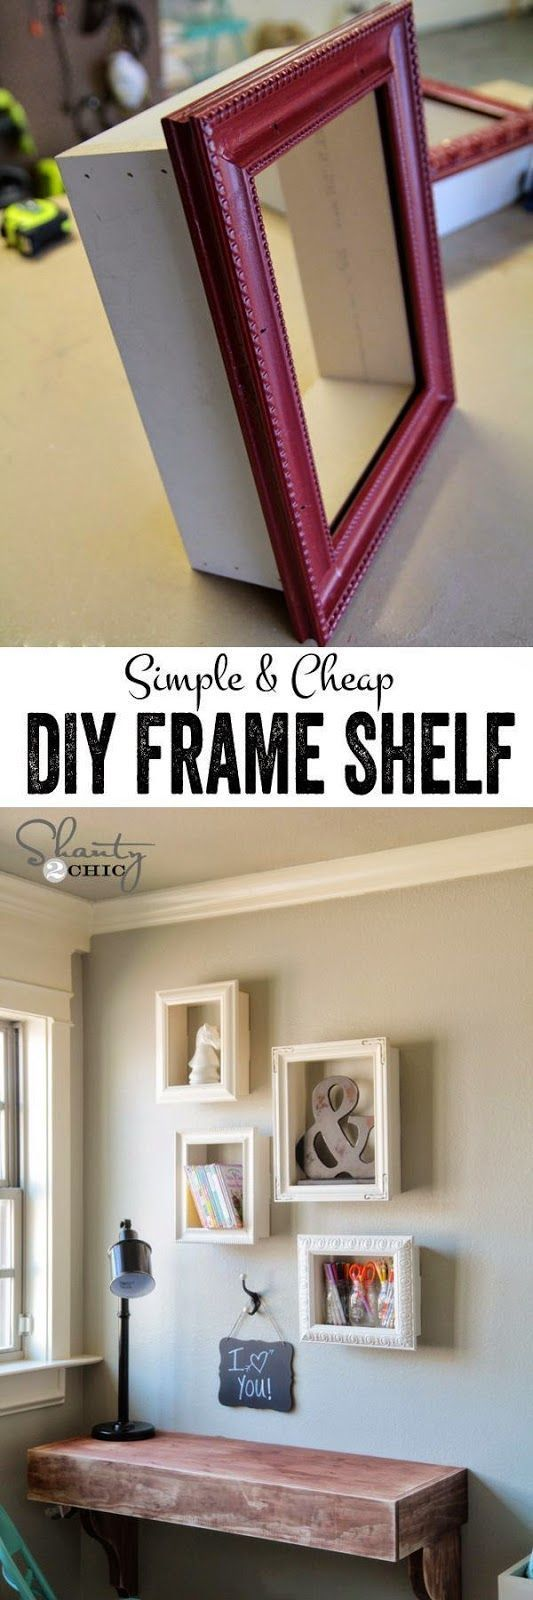 Learn how to make these cute and simple DIY frame shelves. It's a great way to reuse old frames or dress up frames and fill open wall space in a unique way.